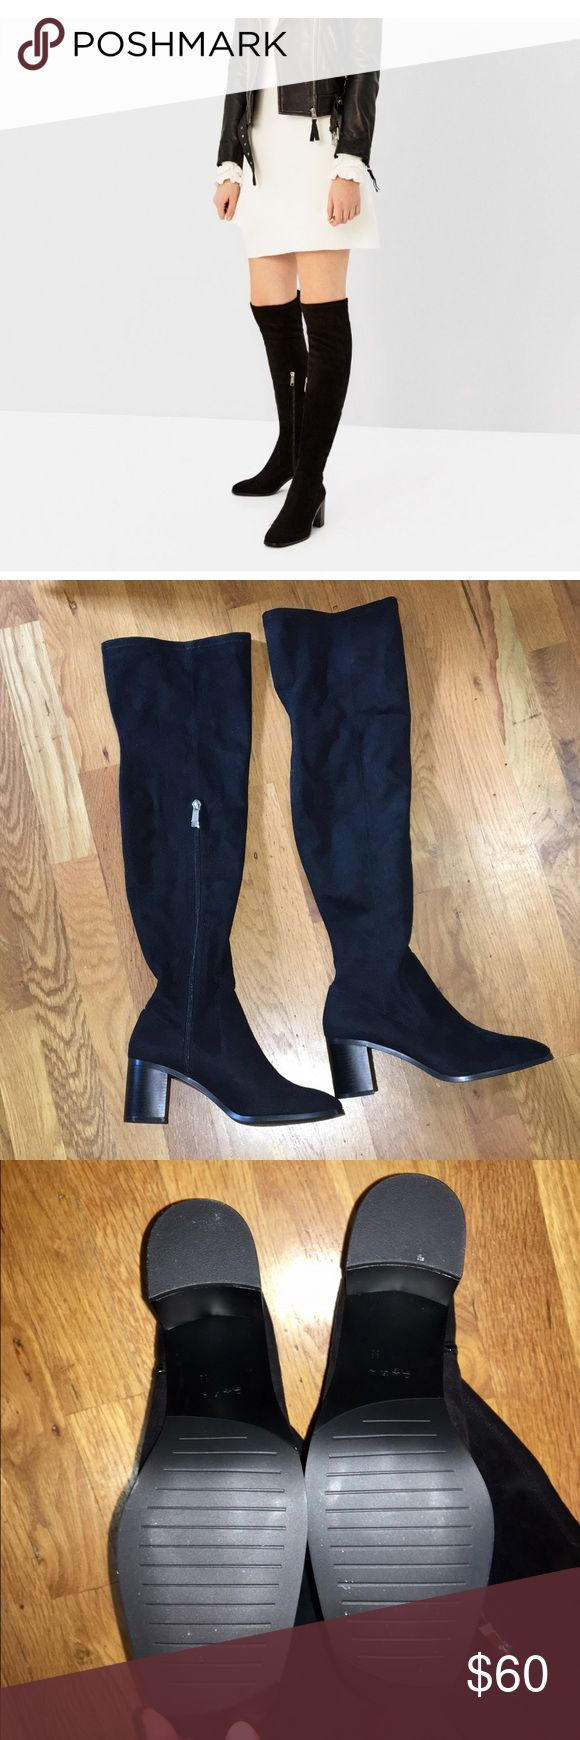 """ZARA Over The Knee Stretch Boots NWT! Zara black over the knee stretch boots. Block heel 2.7"""" Zara Shoes Over the Knee Boots"""